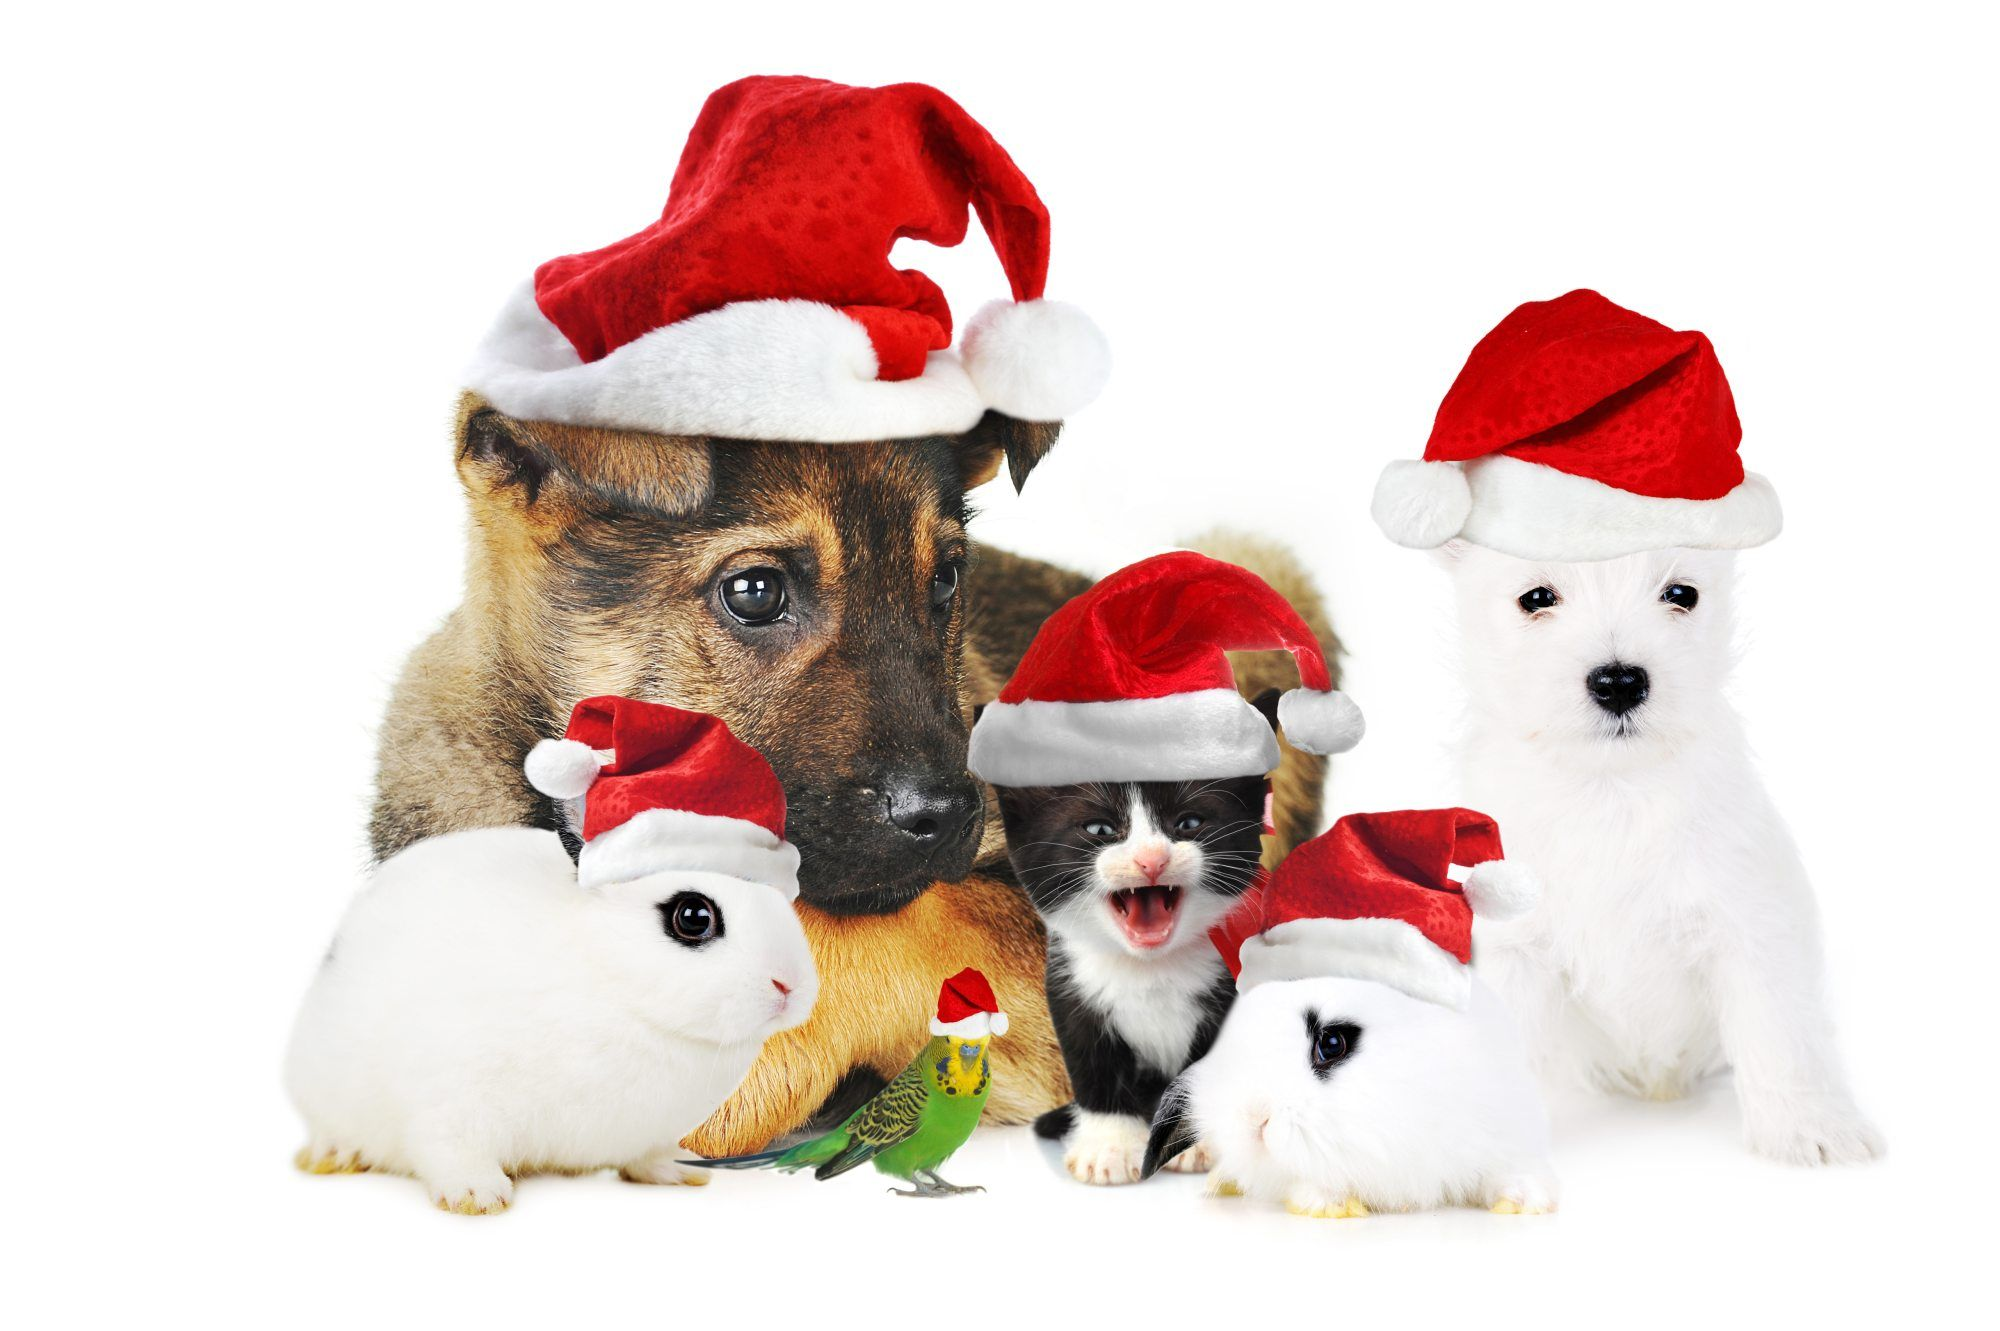 We Wish You, Your Family, and Pets a Very, Merry Christmas